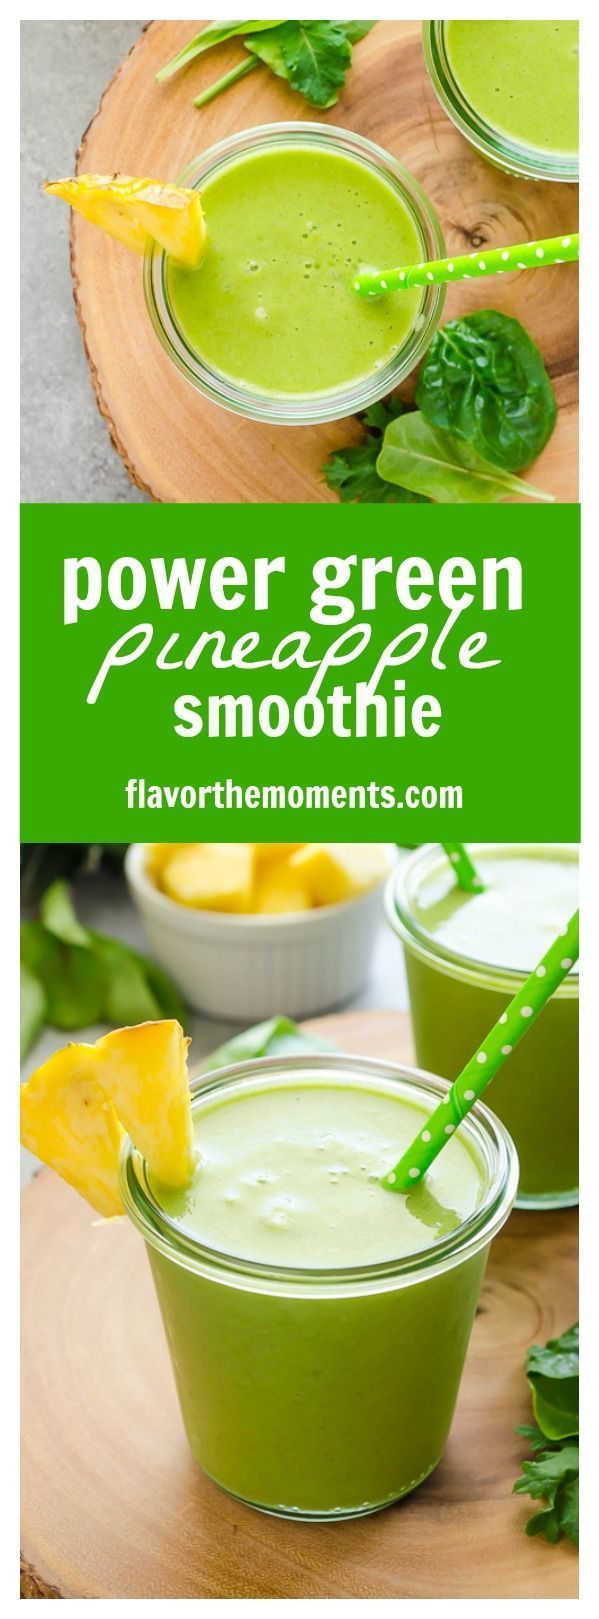 Power Green Pineapple Smoothie is a refreshing blend of pineapple, power greens, and chia seeds for a vegan, energy boosting smoothie that even the kids will love! @Flavor the Moments